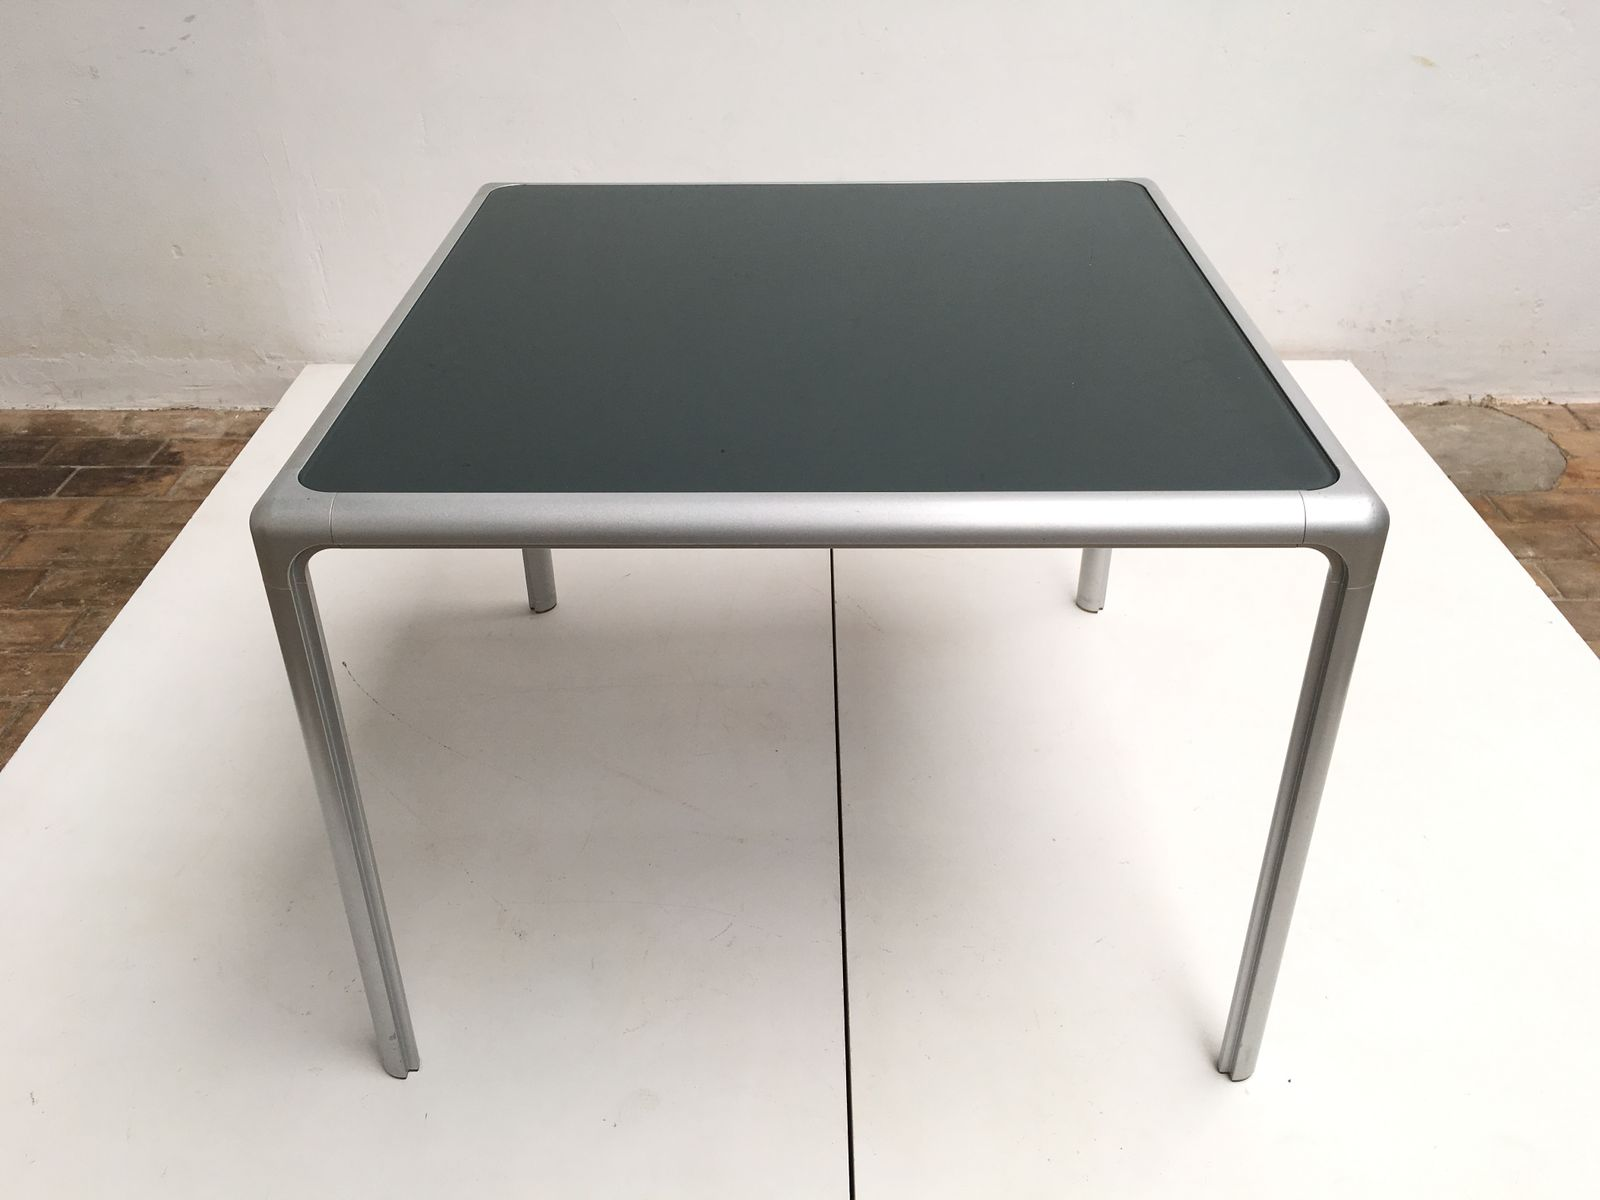 Cast Aluminum & Glass Dining Table from Dexo 1980s for sale at Pamono